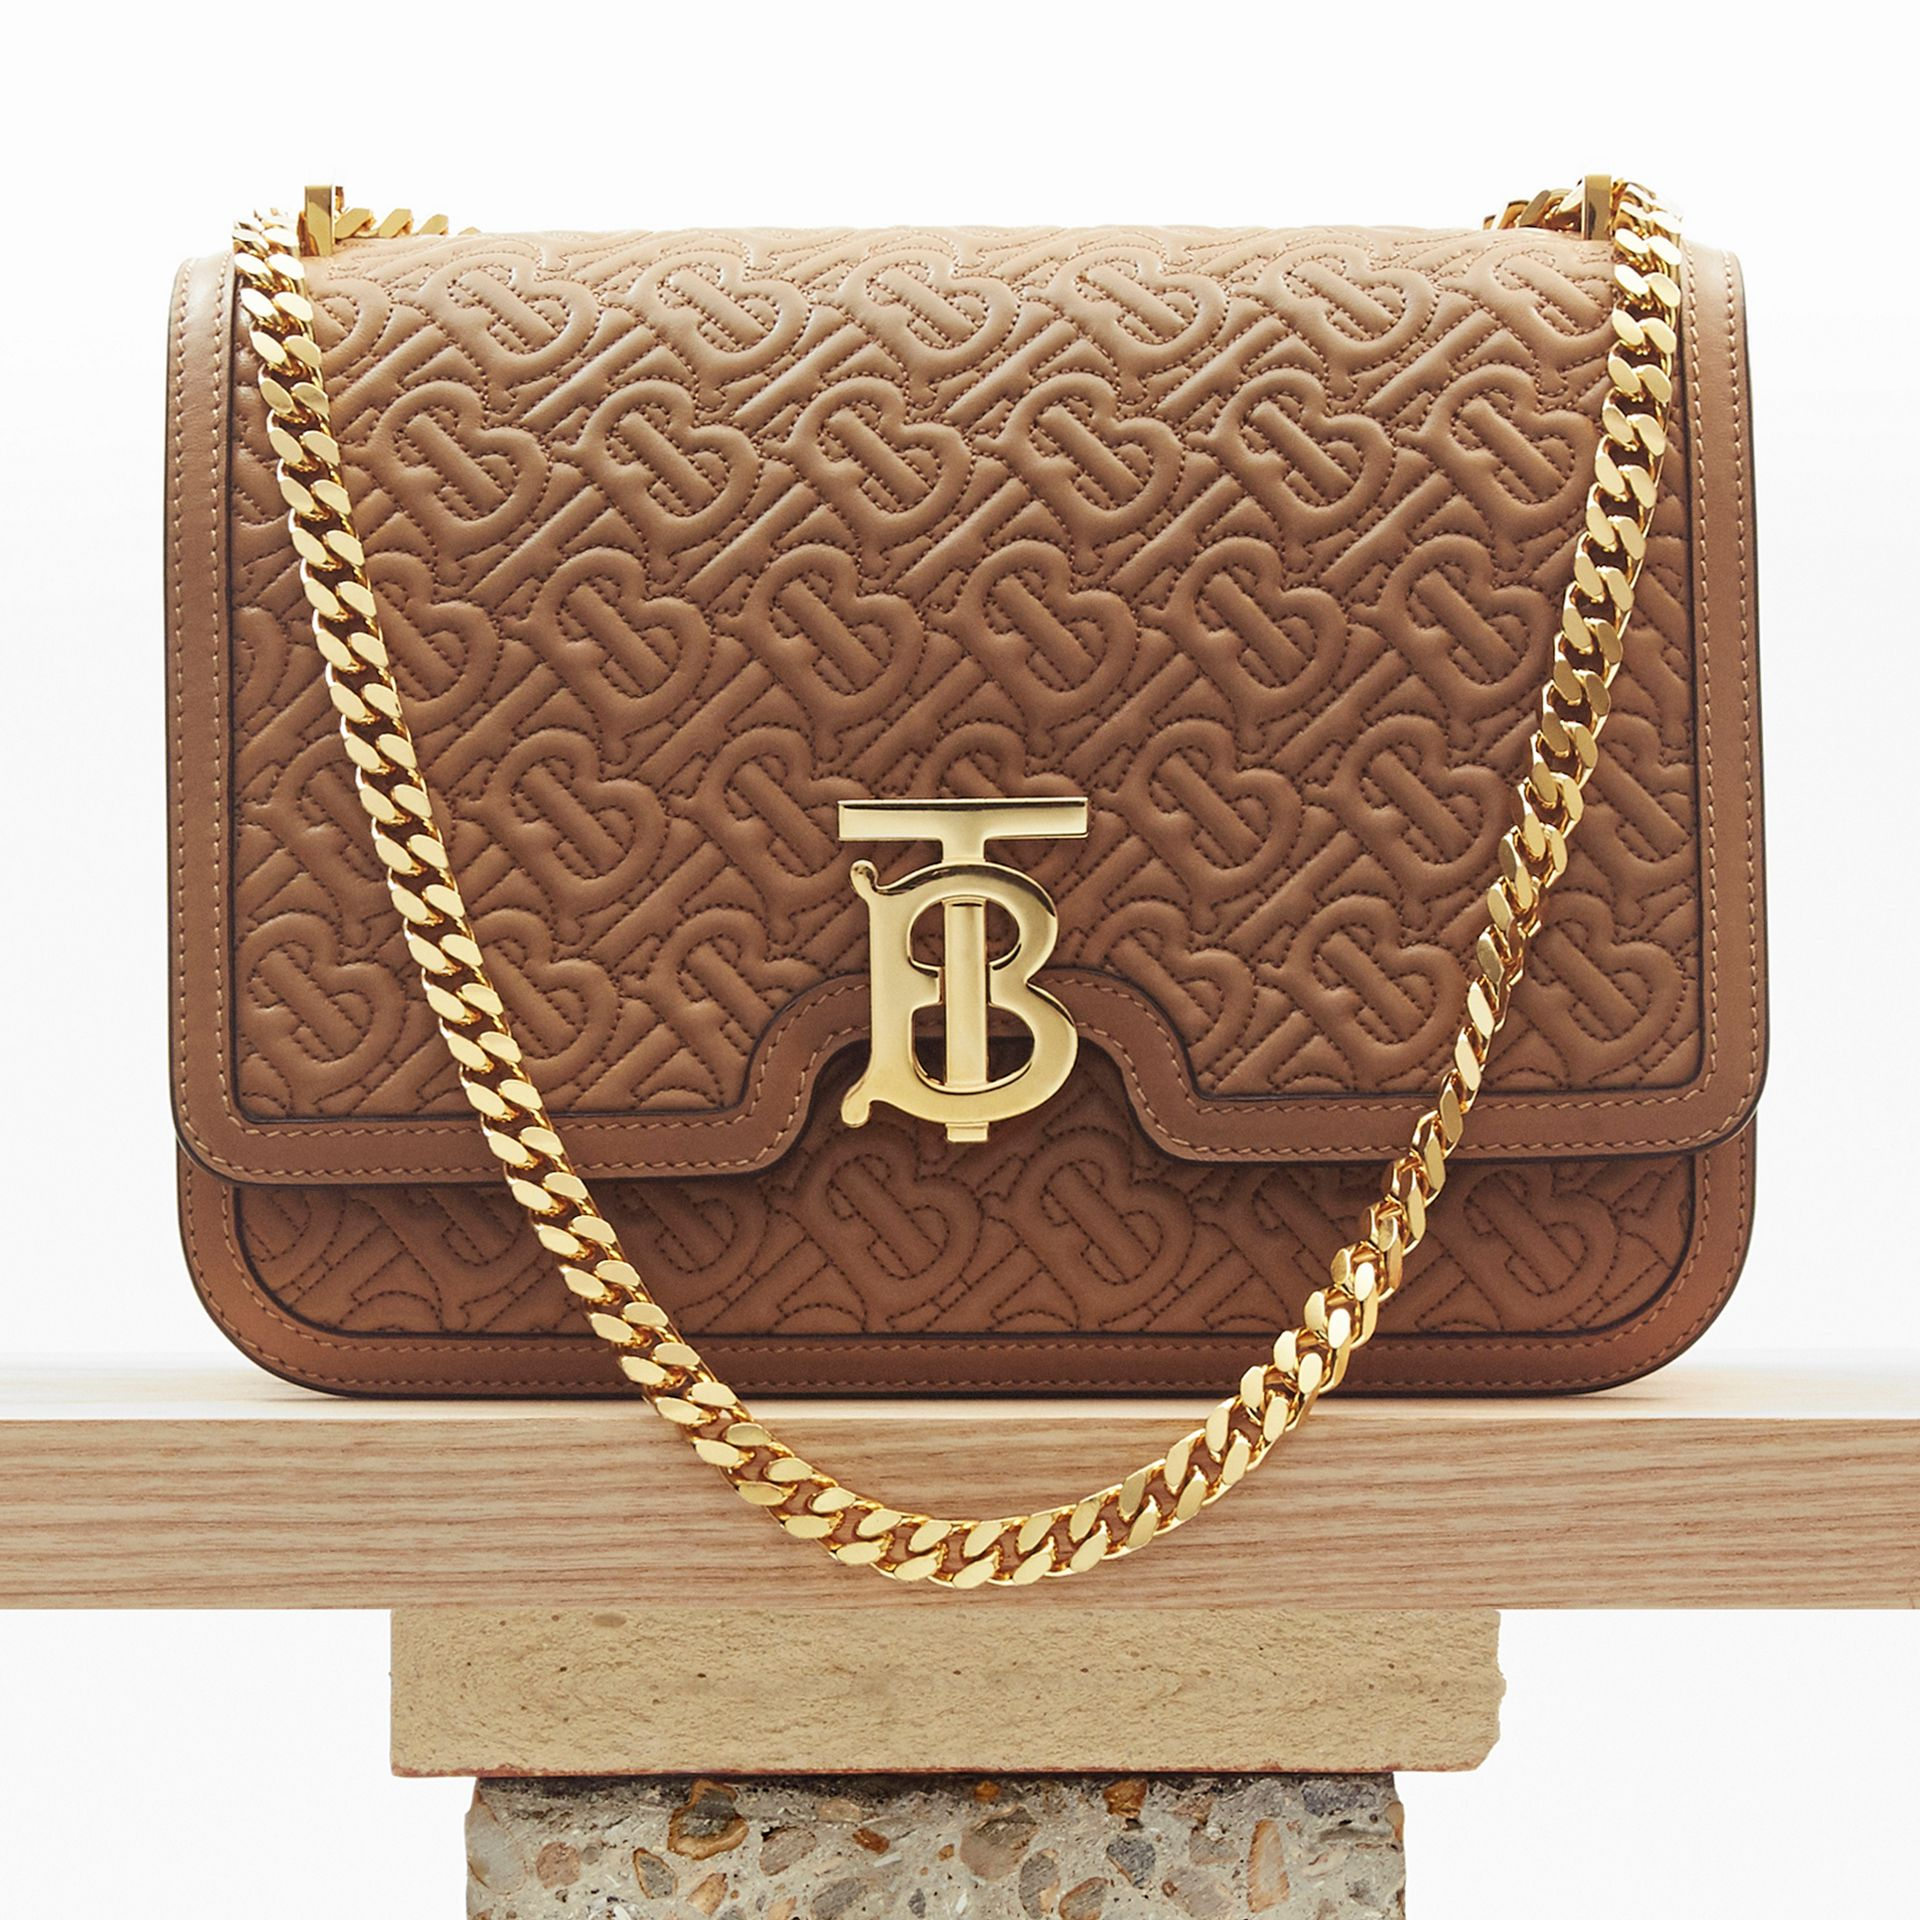 Medium Quilted Monogram Lambskin TB Bag in Honey - Women | Burberry - gallery image 8